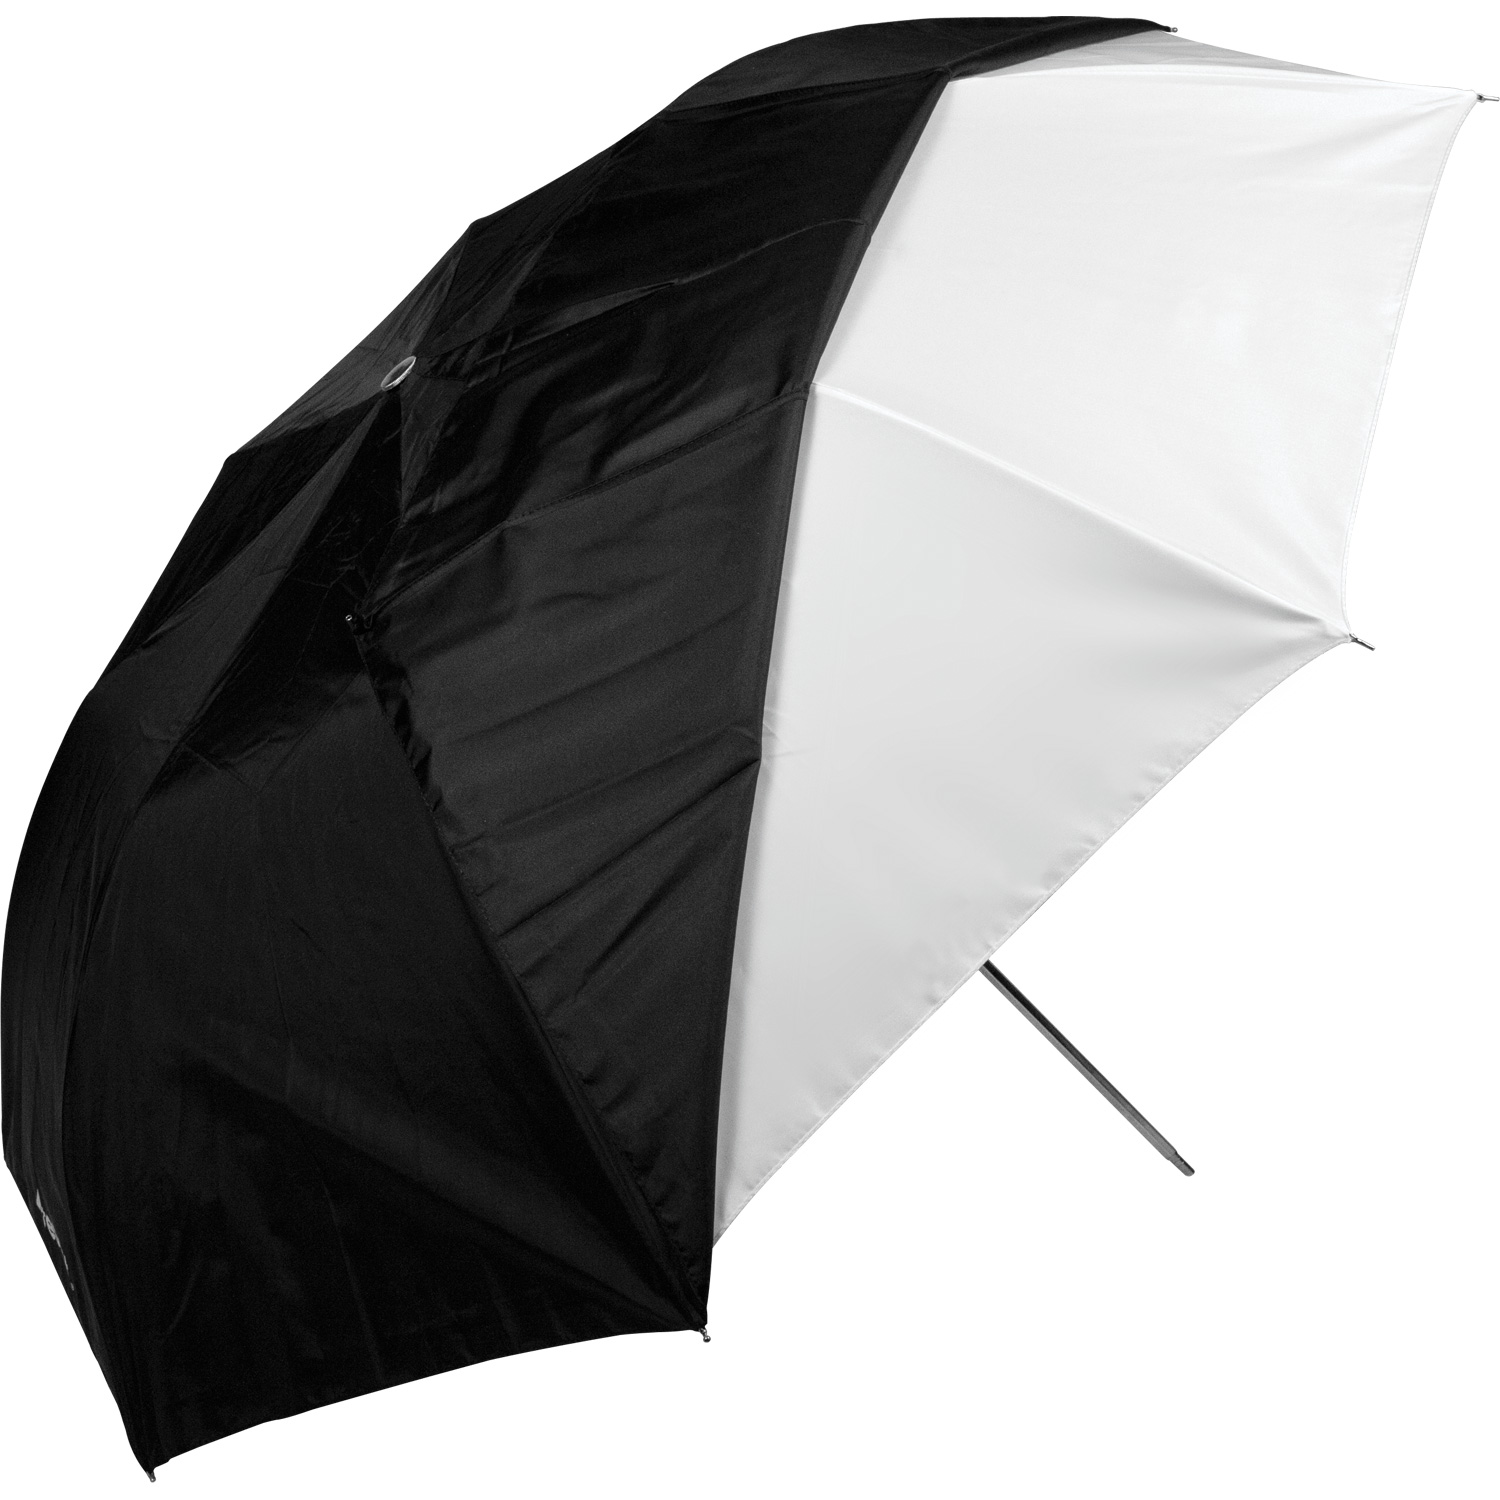 43-in. White Satin Collapsible Umbrella with Removable Black Cover